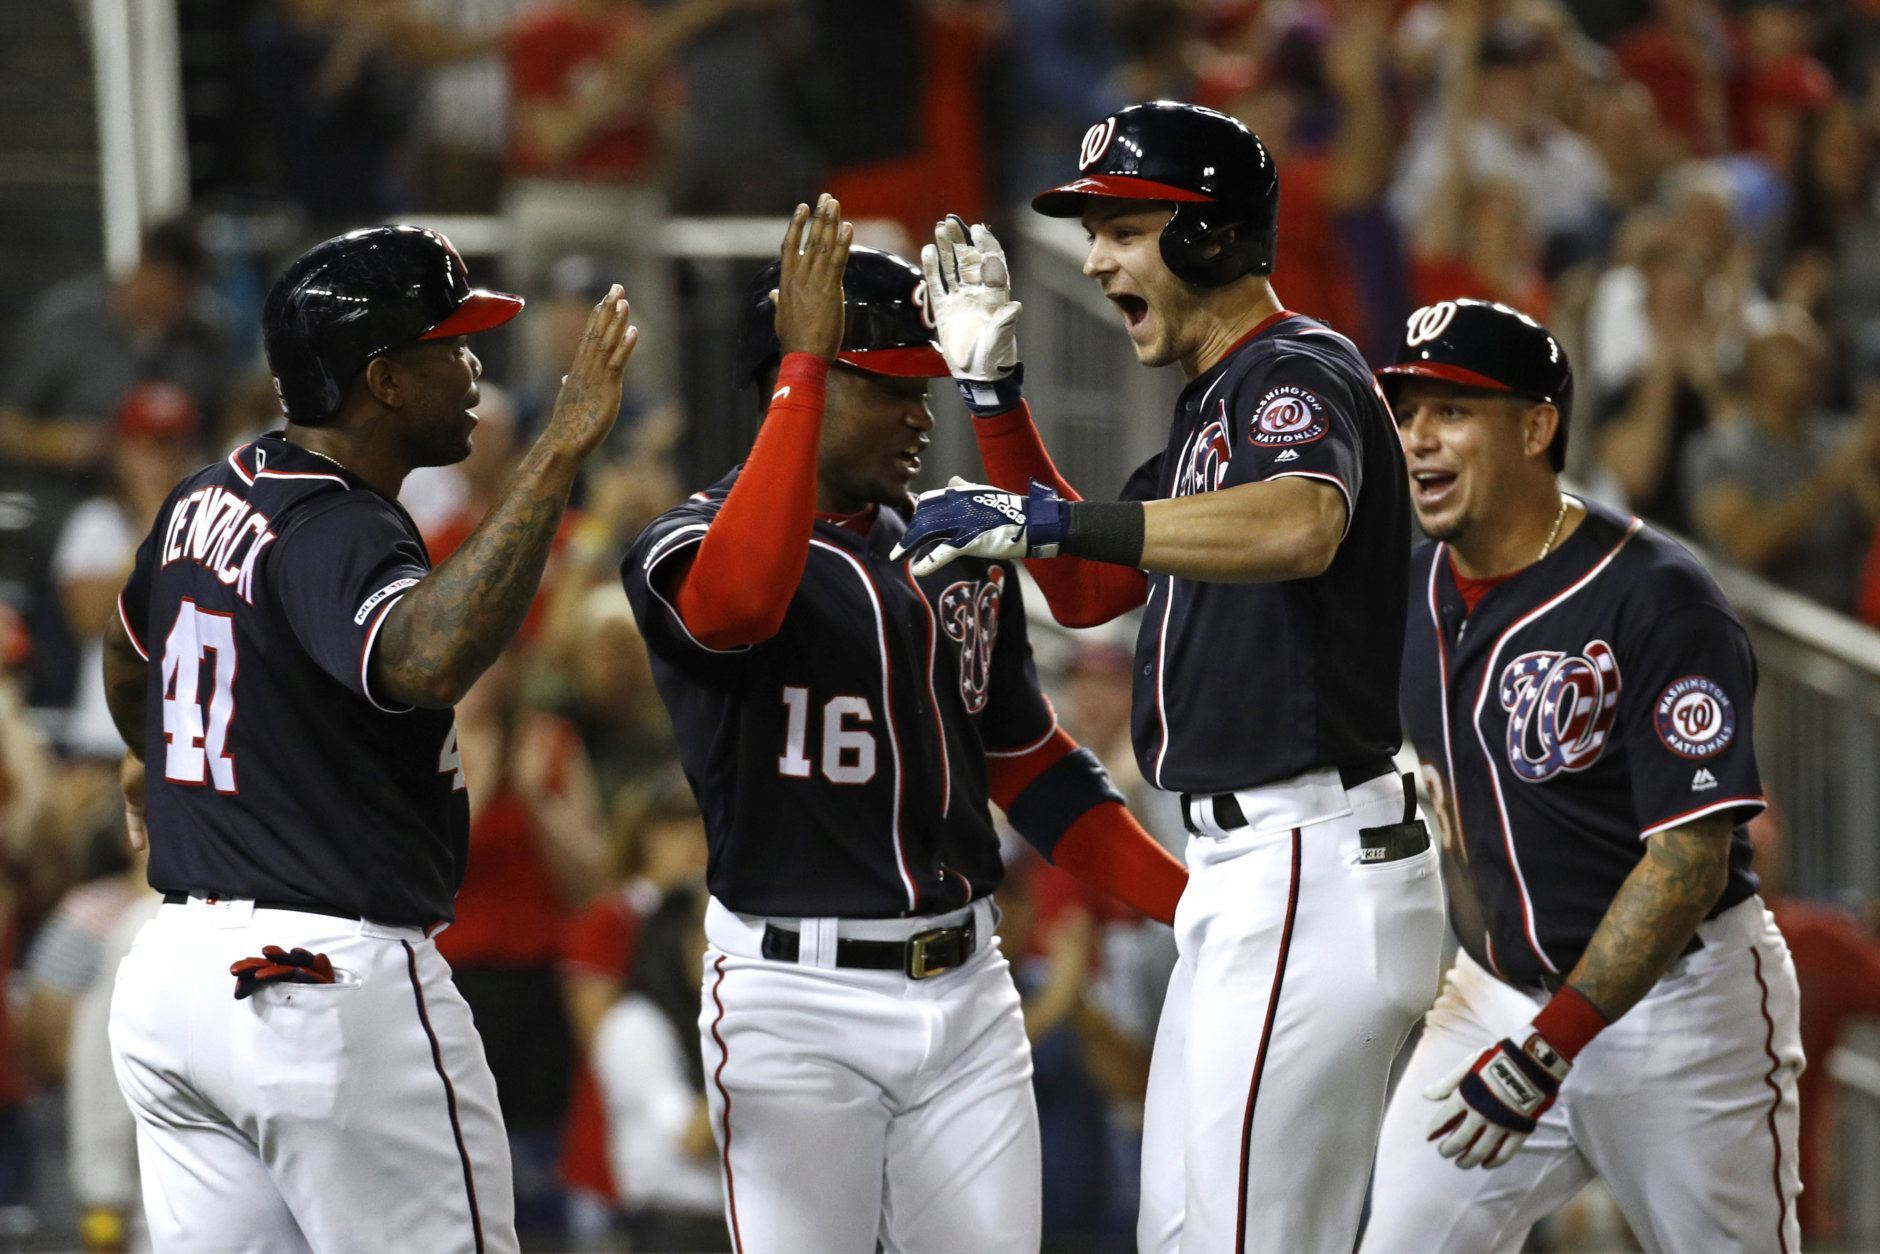 <p><strong>Jonathan Warner, sports anchor</strong></p> <p>World Series Prediction: Nationals in seven games</p> <p>World Series MVP: Trea Turner</p> <p>Bold Prediction: Justin Verlander does not win a game in the series.</p>